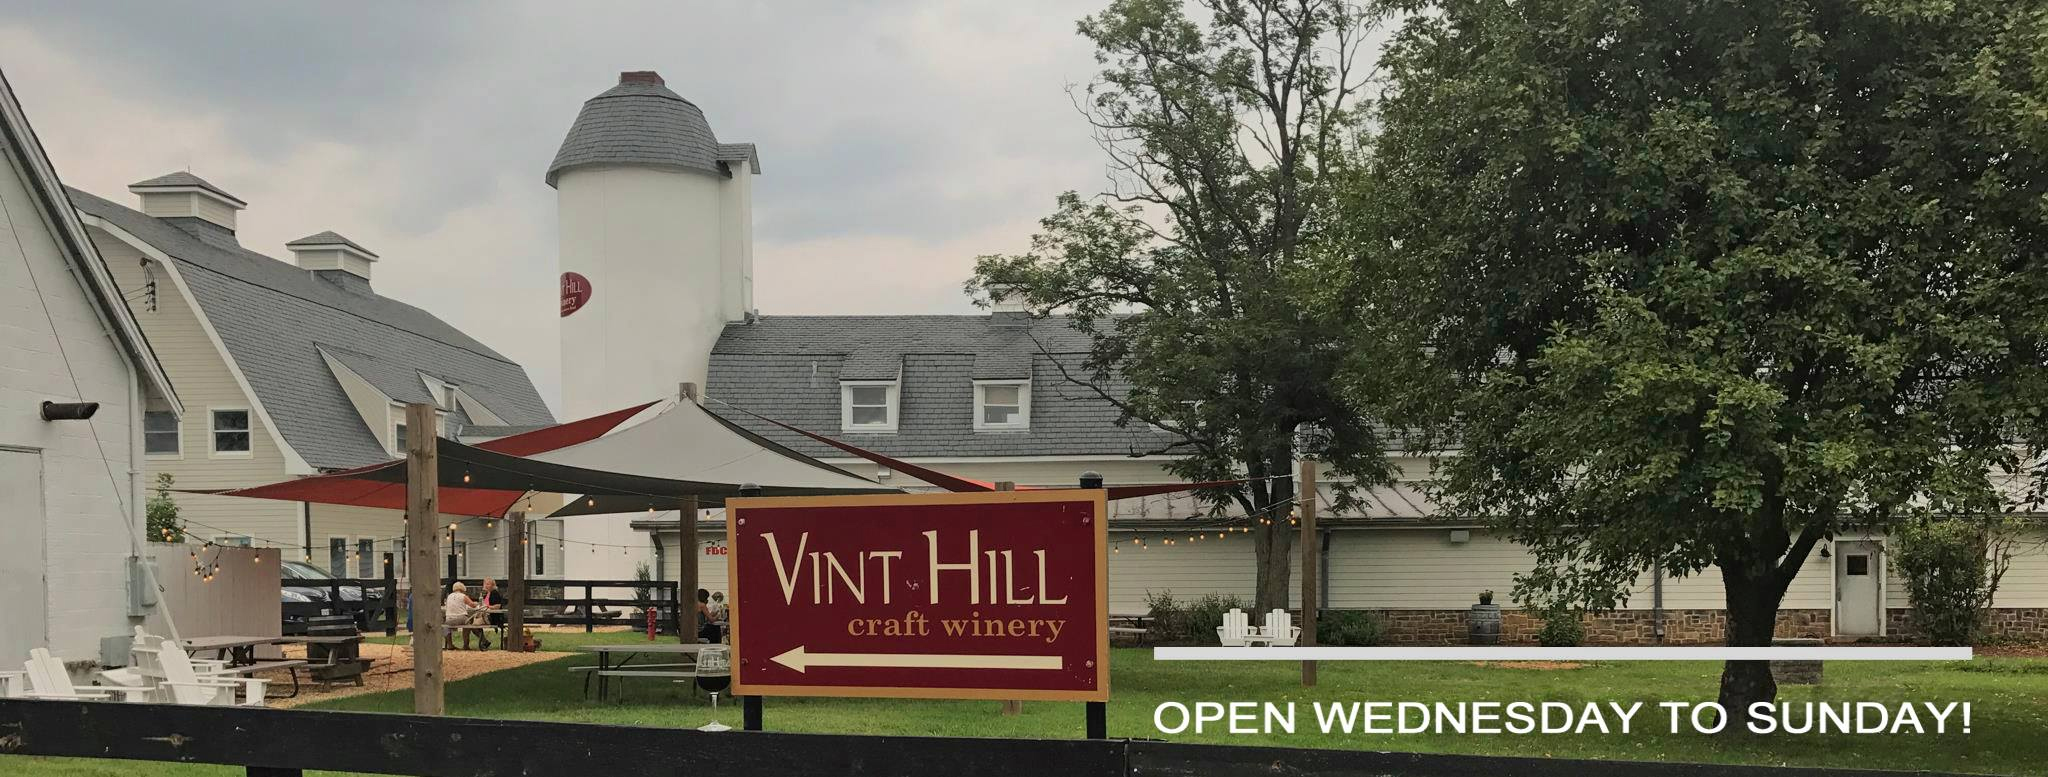 Vine Hill Craft Winery.jpg